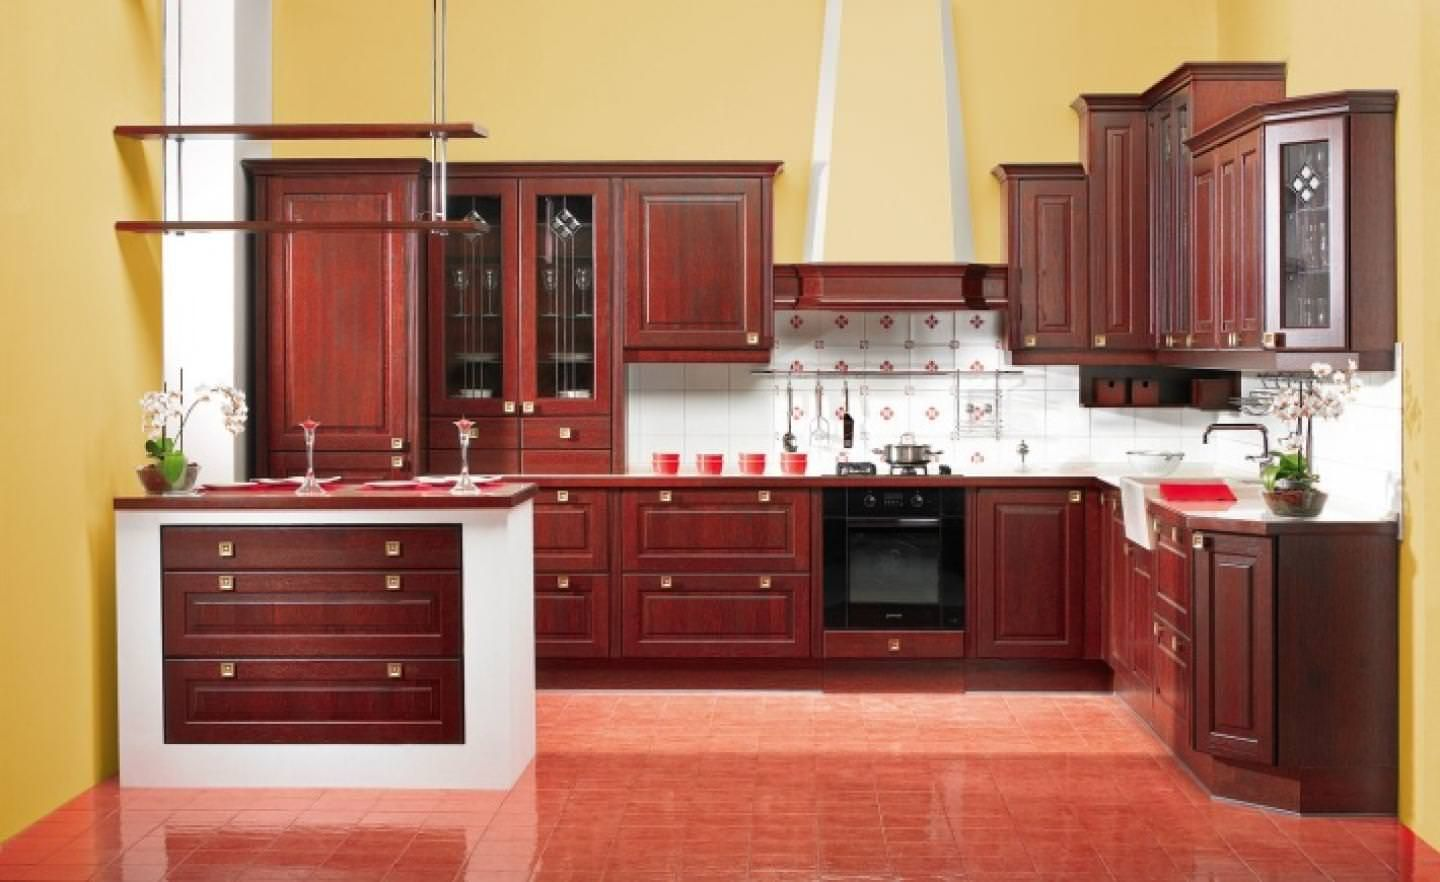 Cherry Kitchen Cabinets The Home Depot Ideas In 2020 Trendy Farmhouse Kitchen Brown Kitchen Cabinets Classic Kitchens